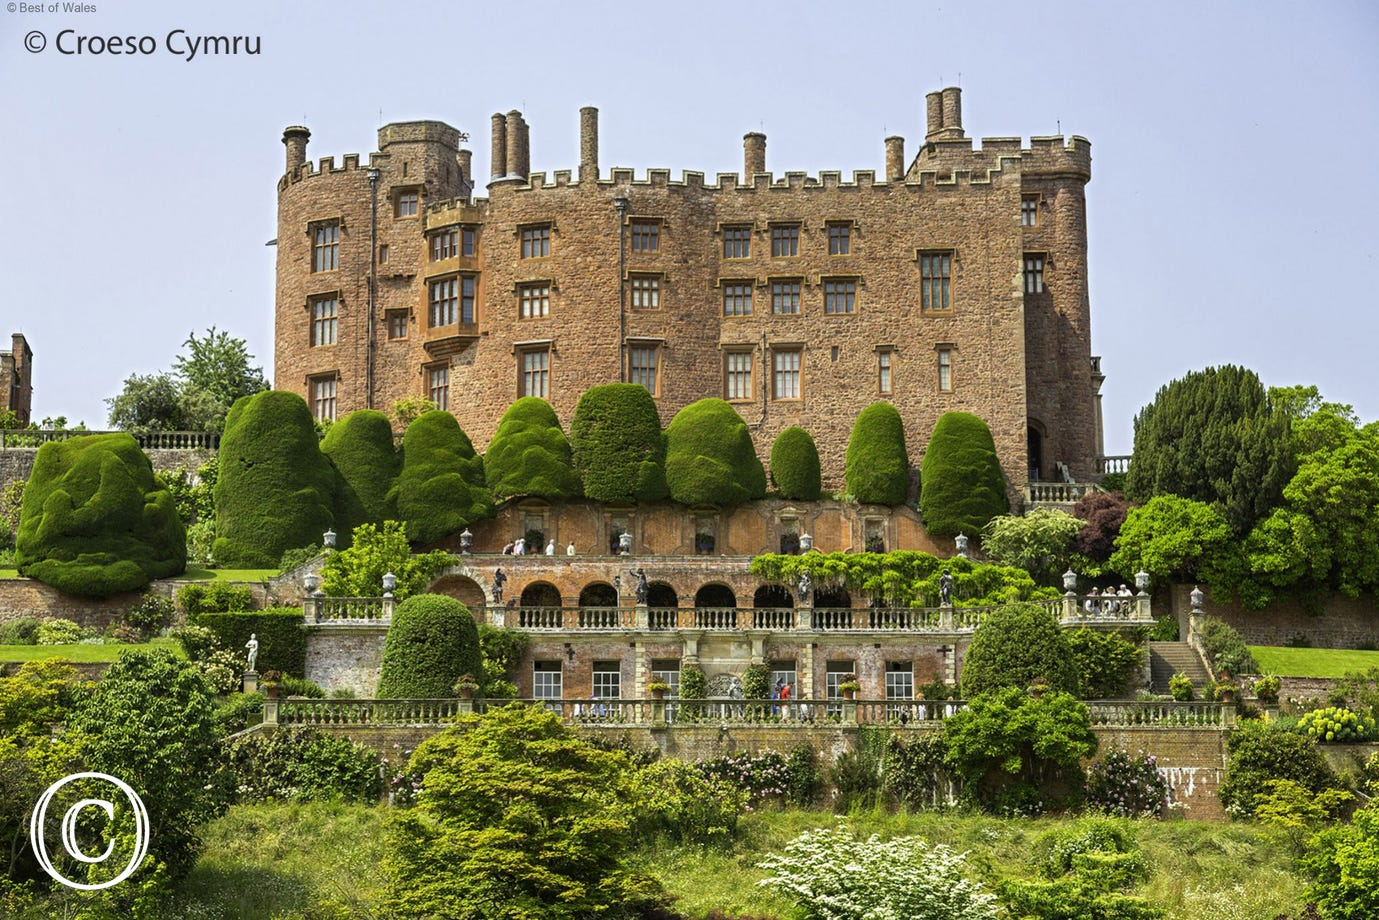 Enjoy a relaxing day out at Powis Castle and its beautiful gardens